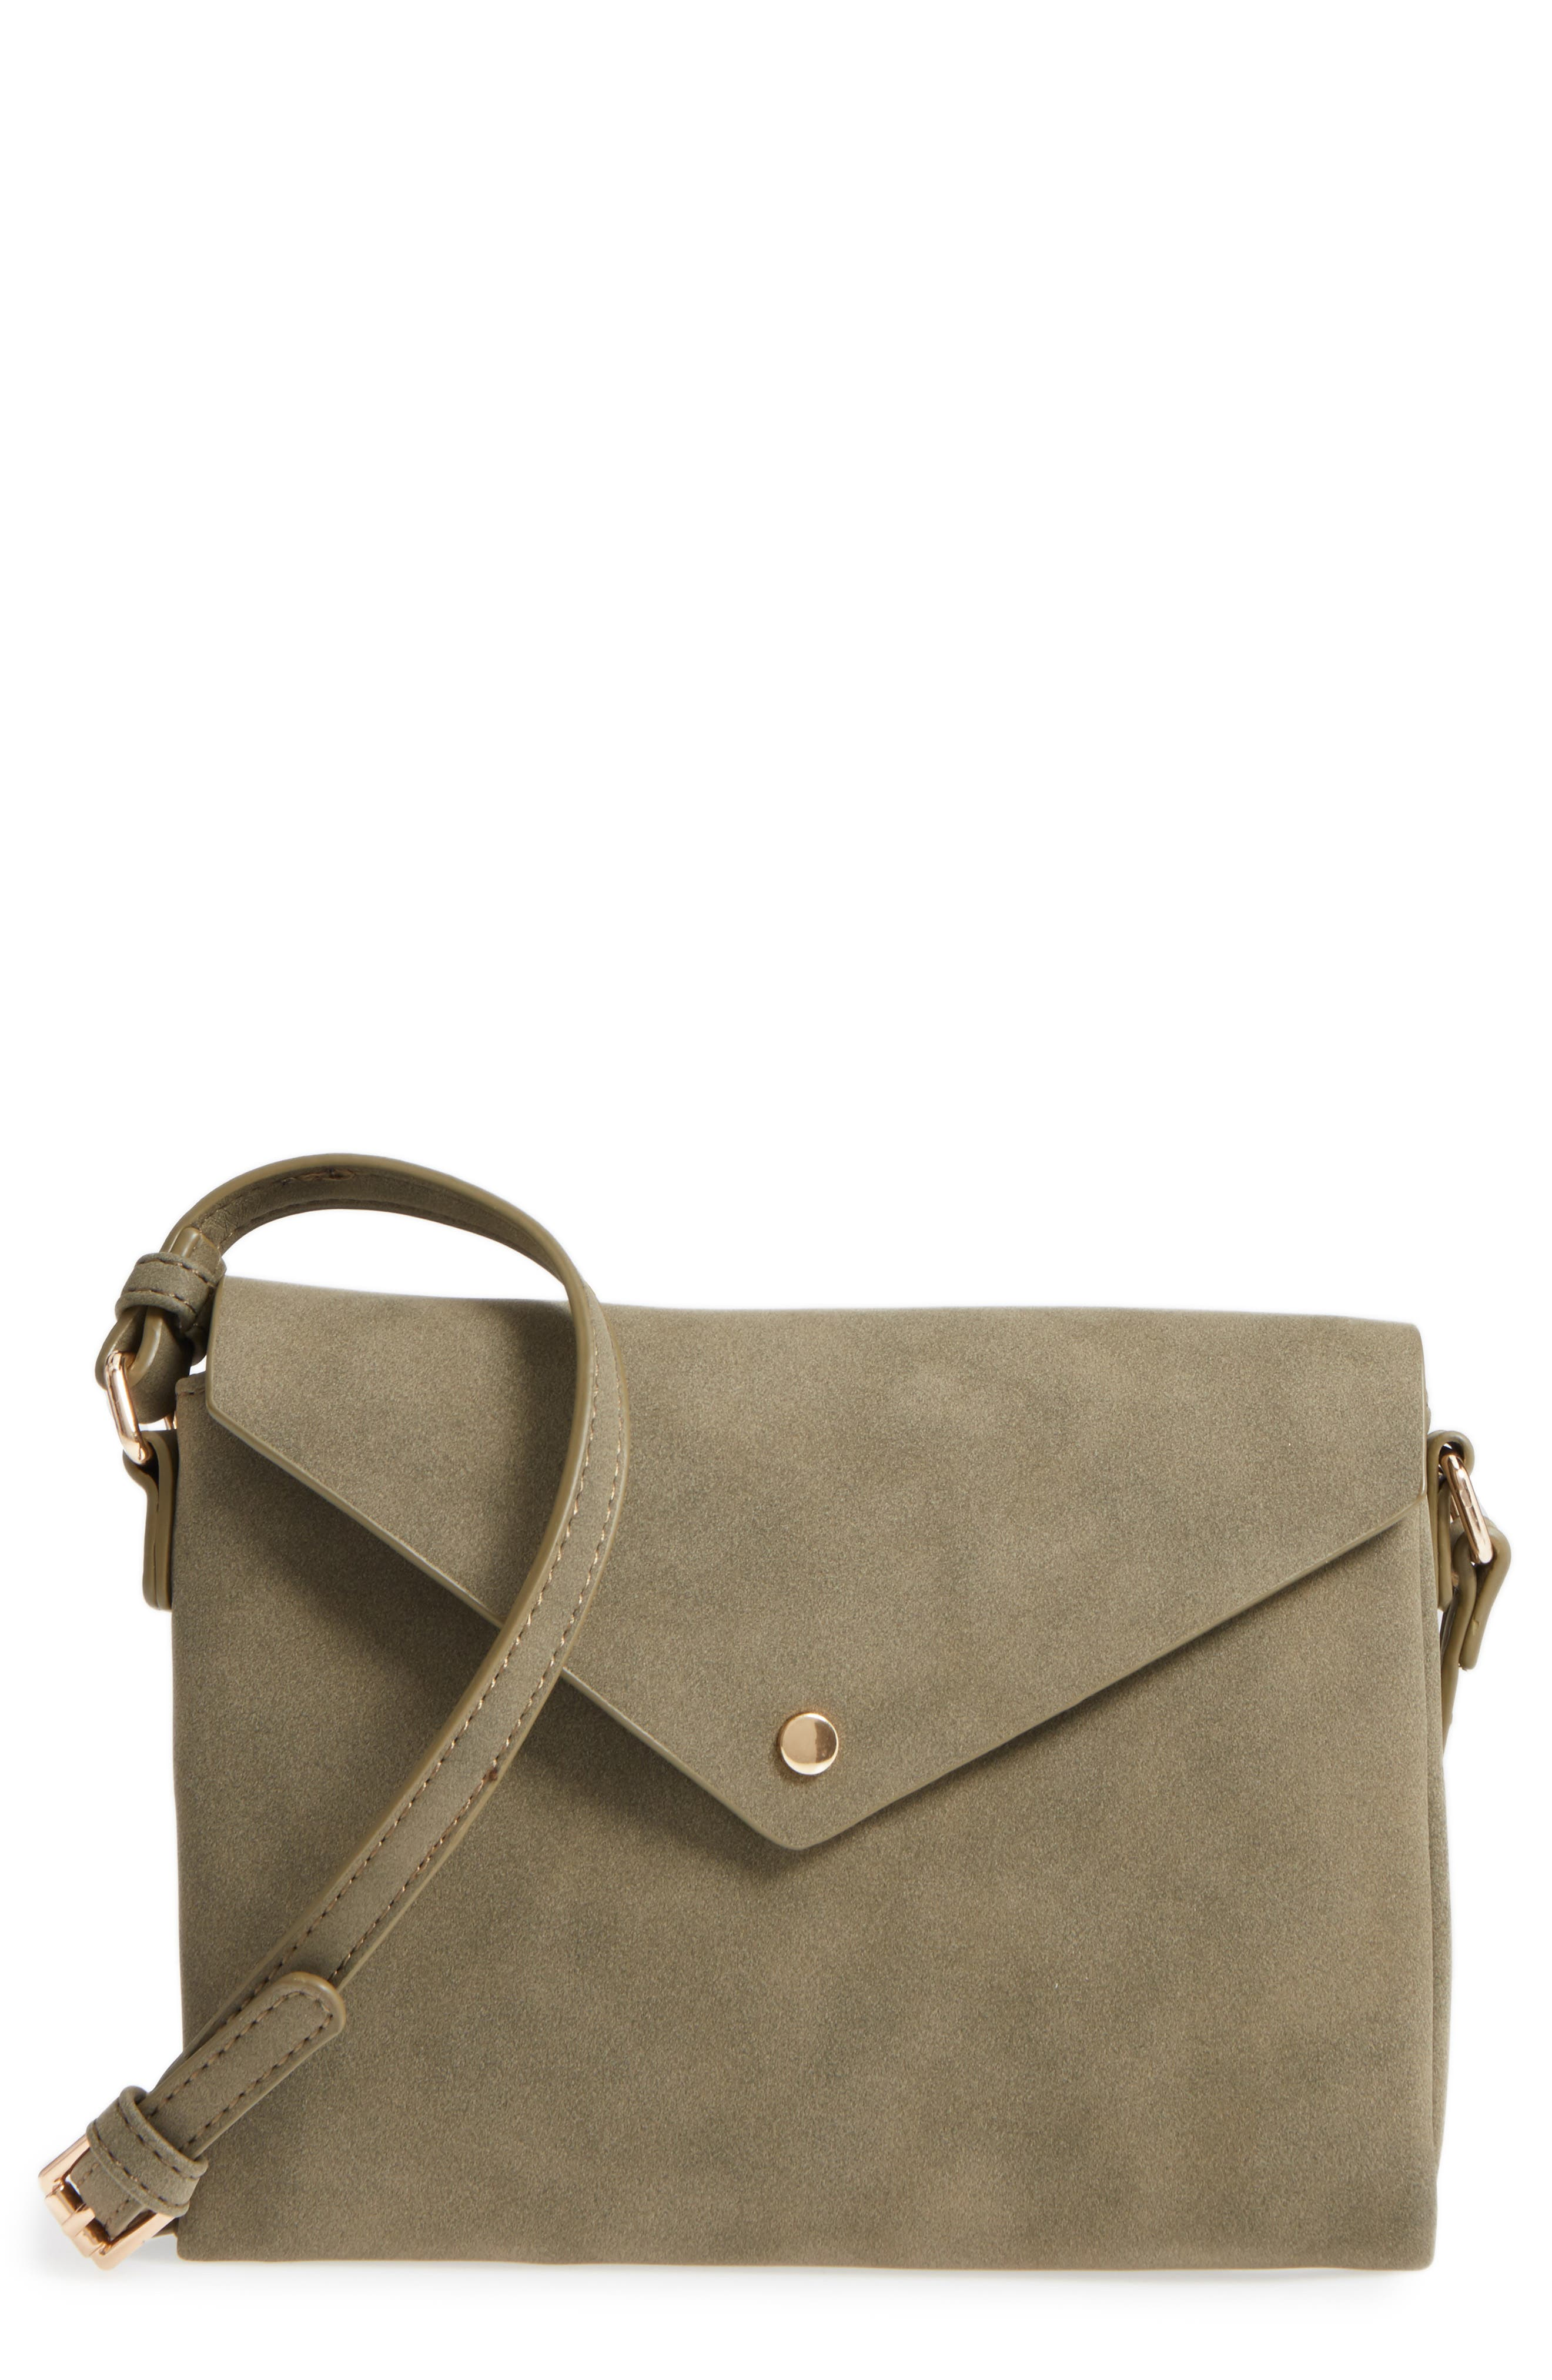 Street Level Envelope Crossbody Bag